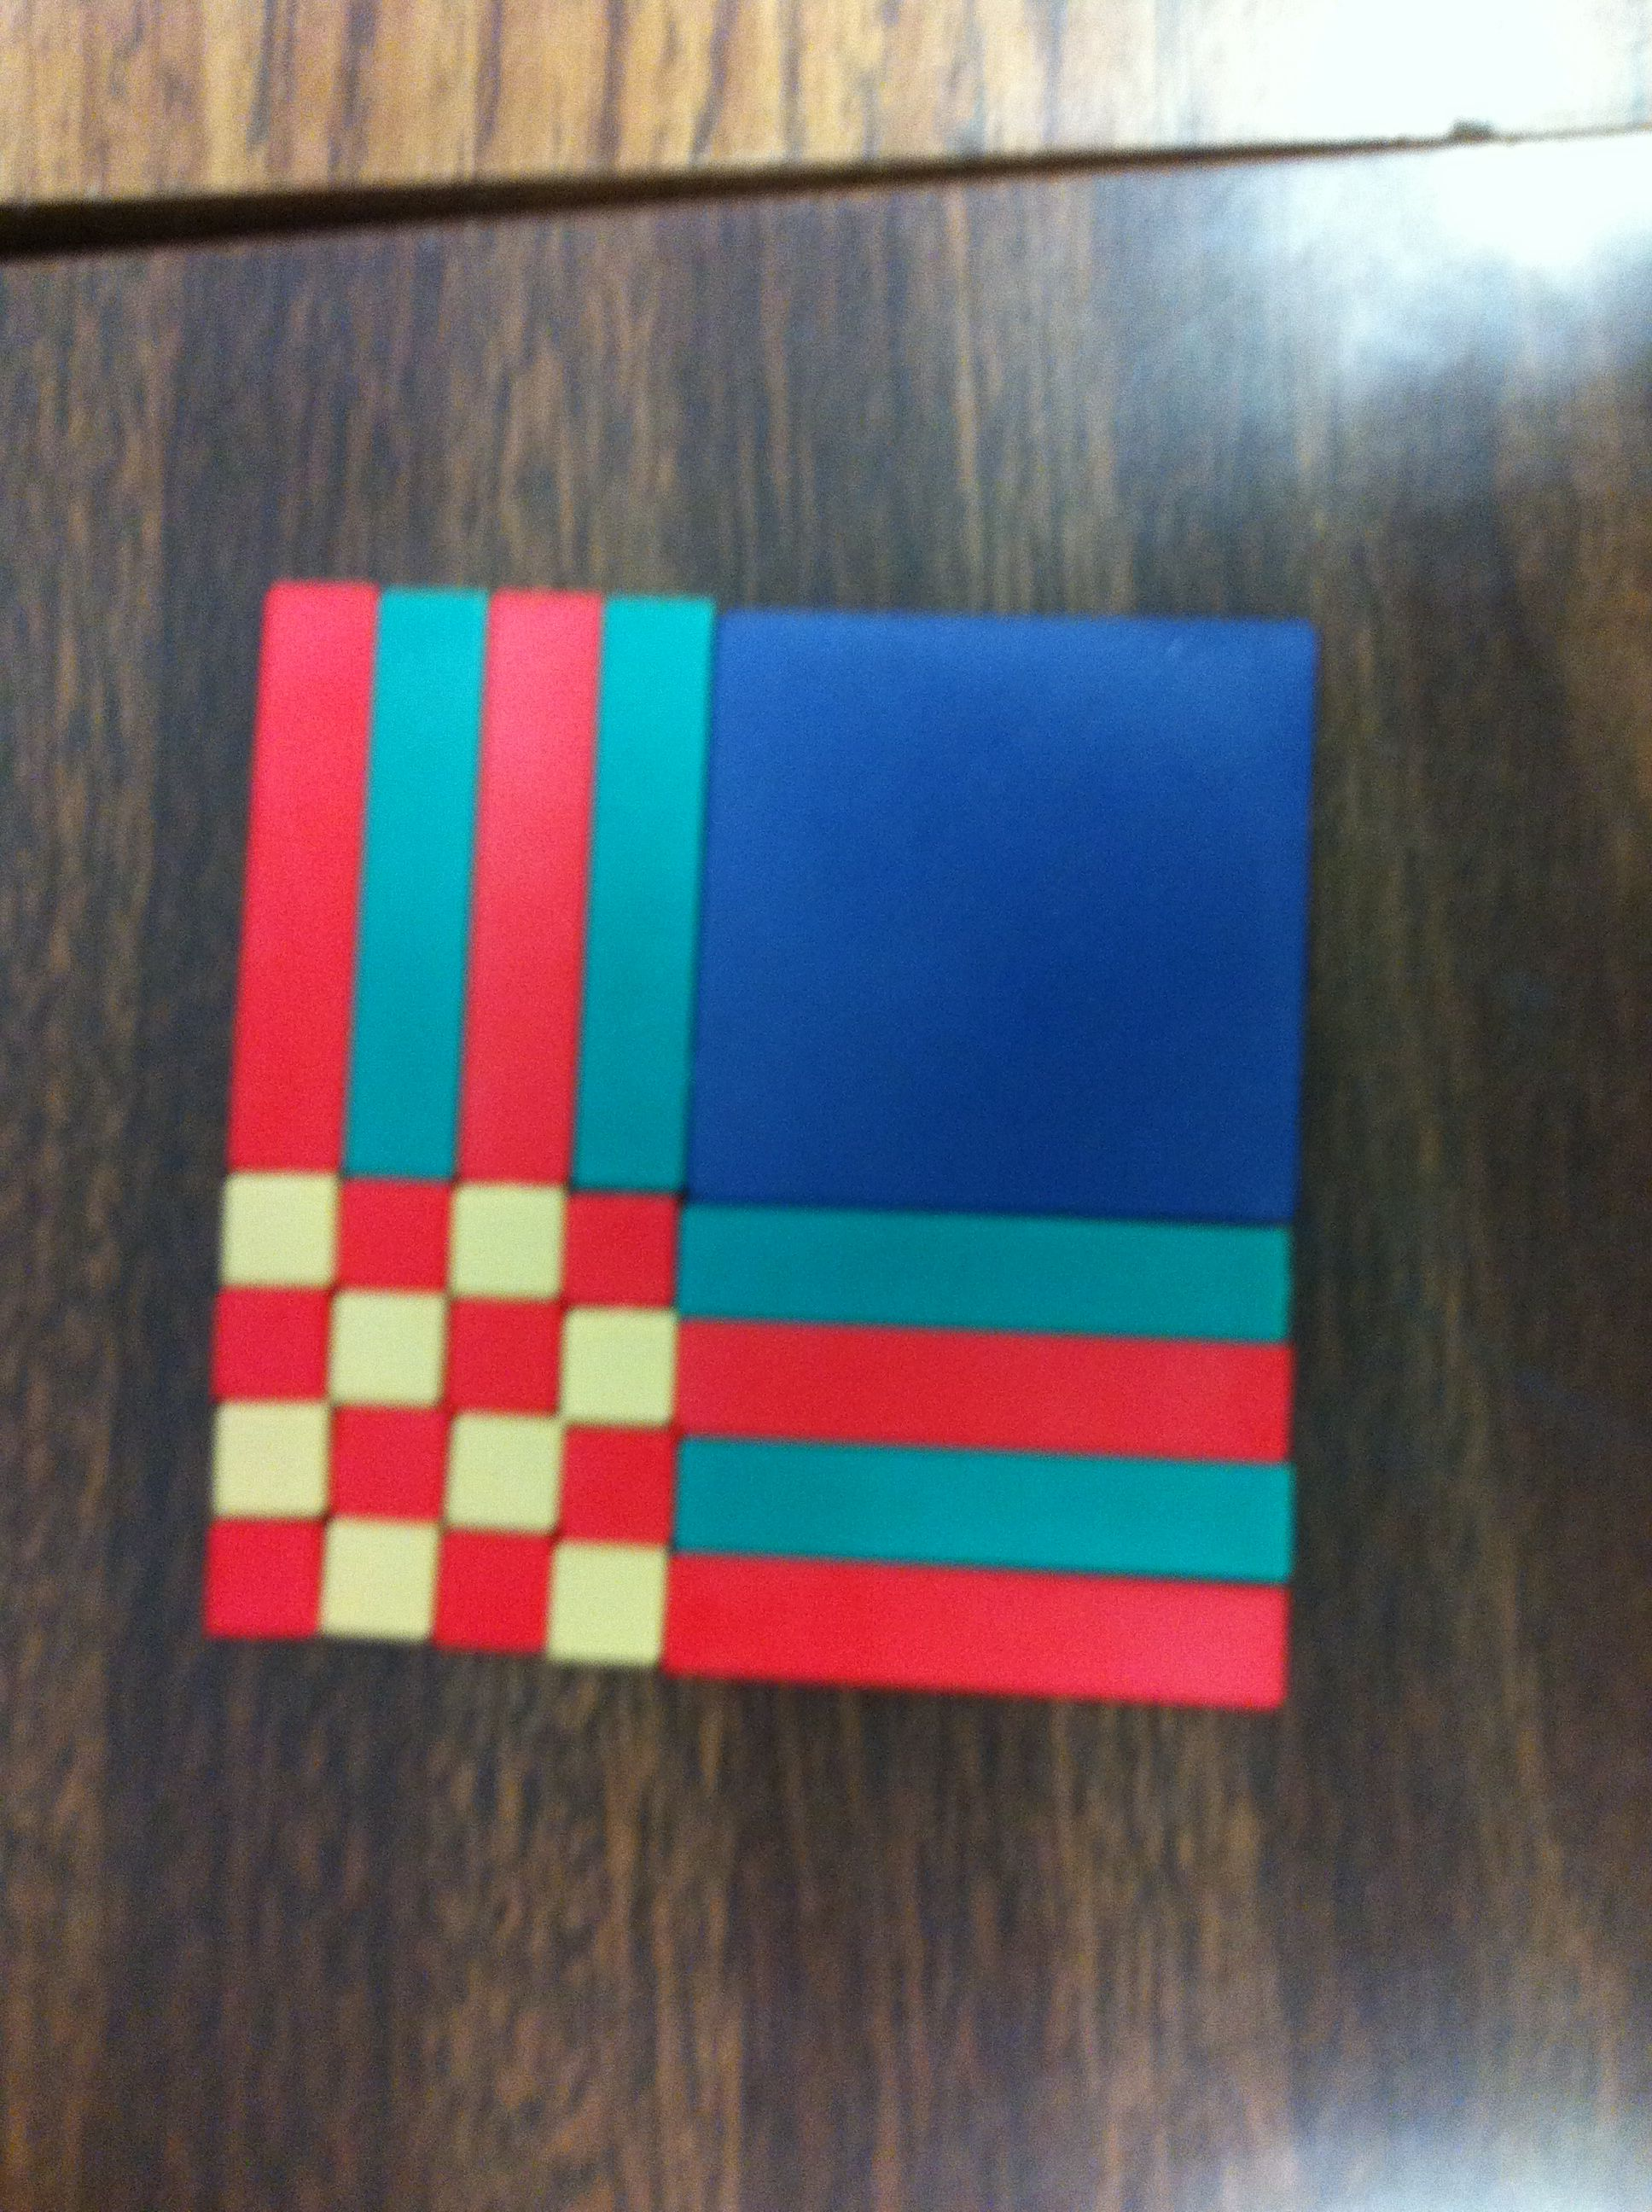 Completing The Square Using Algebra Tiles X 2 8x 16